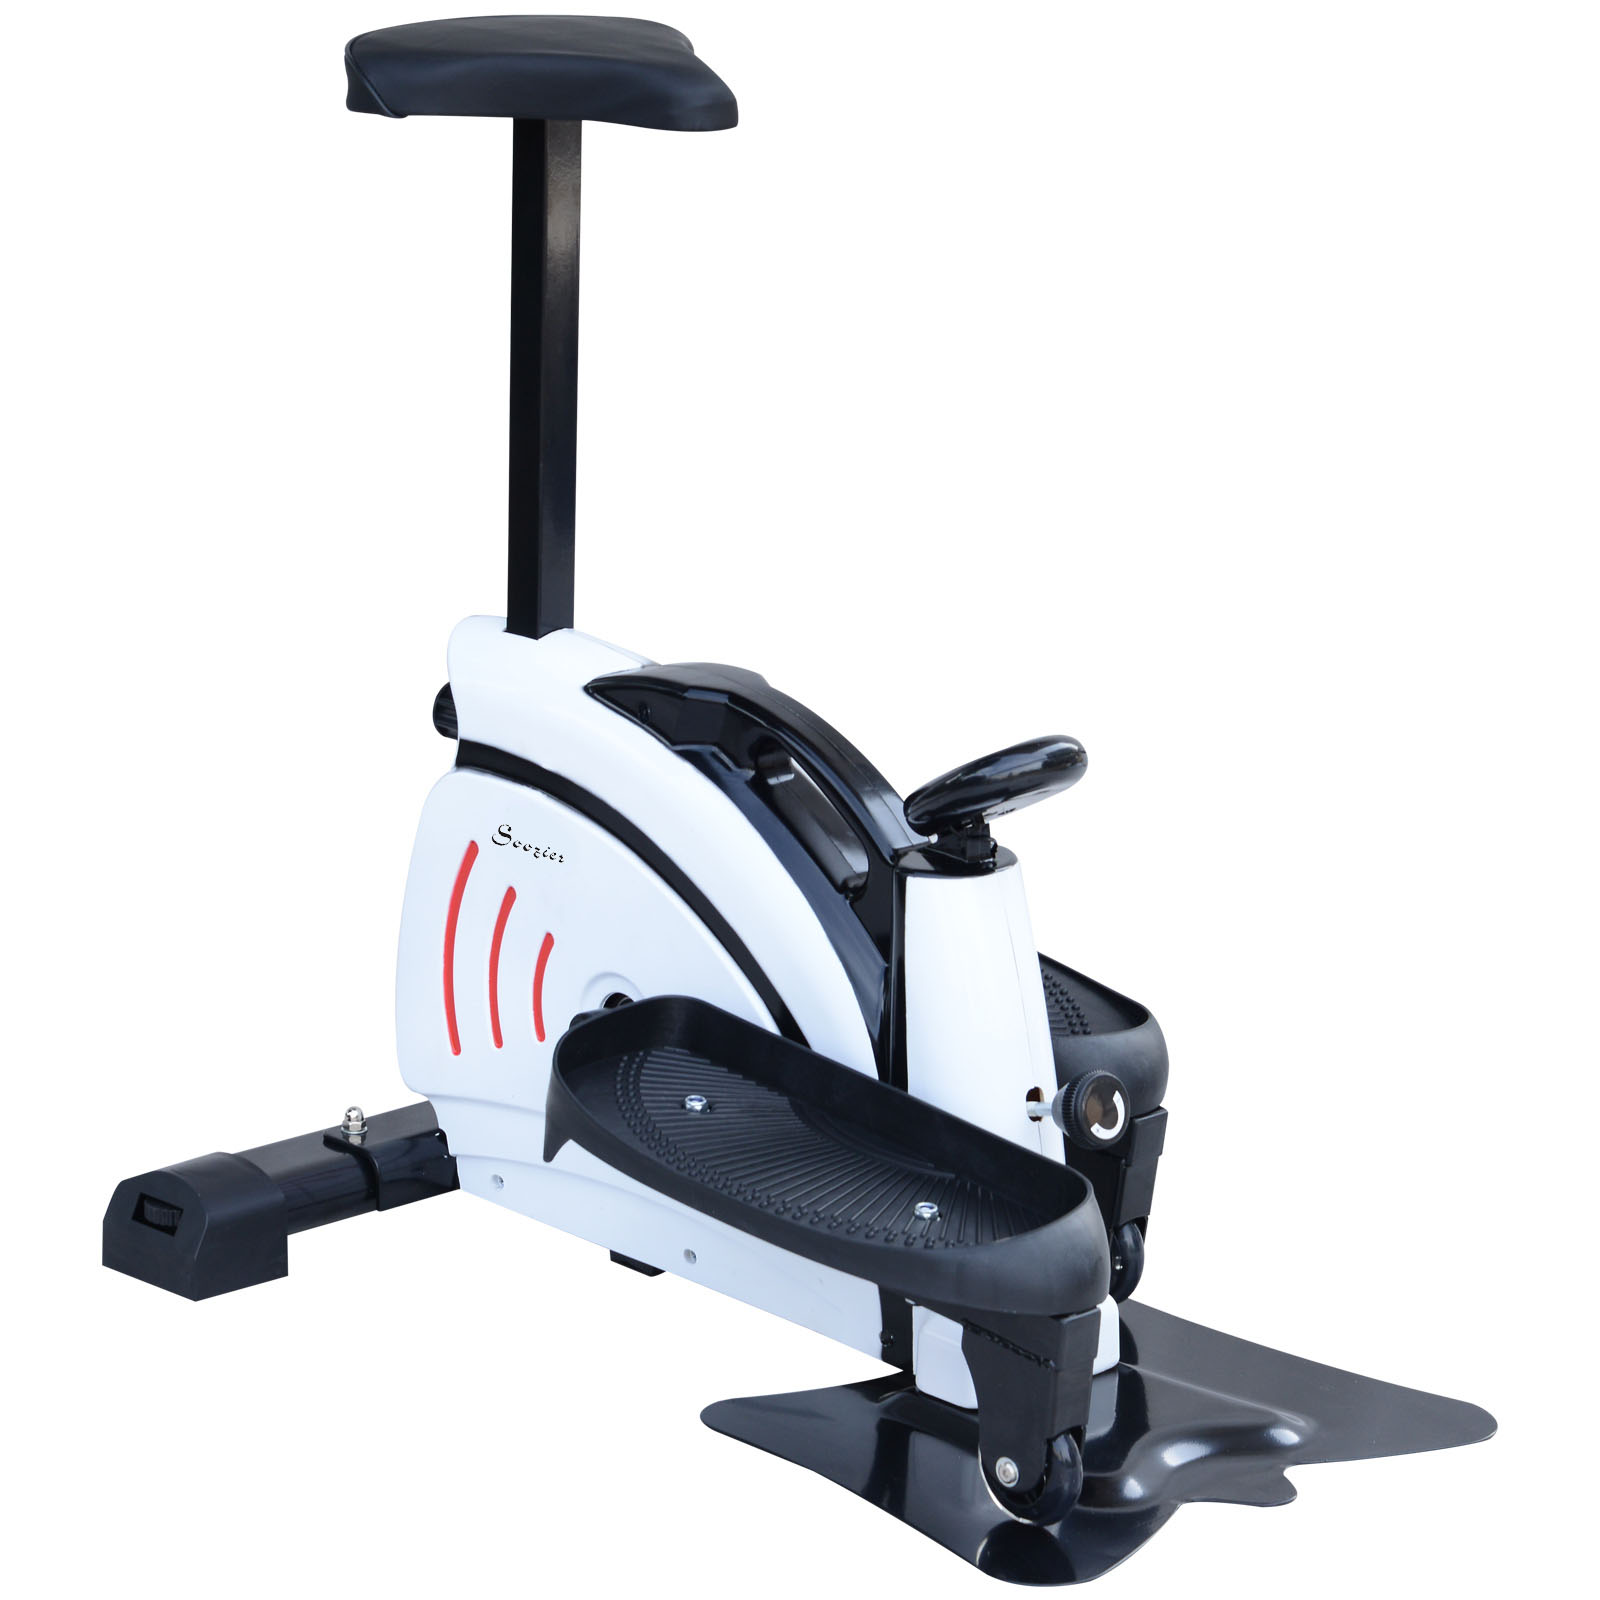 Image of CAD $119.99 Soozier Mini Elliptical Machine w/ Display Monitor / Stepper with Removable Seat Multi-function Pedal Equipment Fitness Trainer Adjustable Resistance Under-desk Canada 95509793812